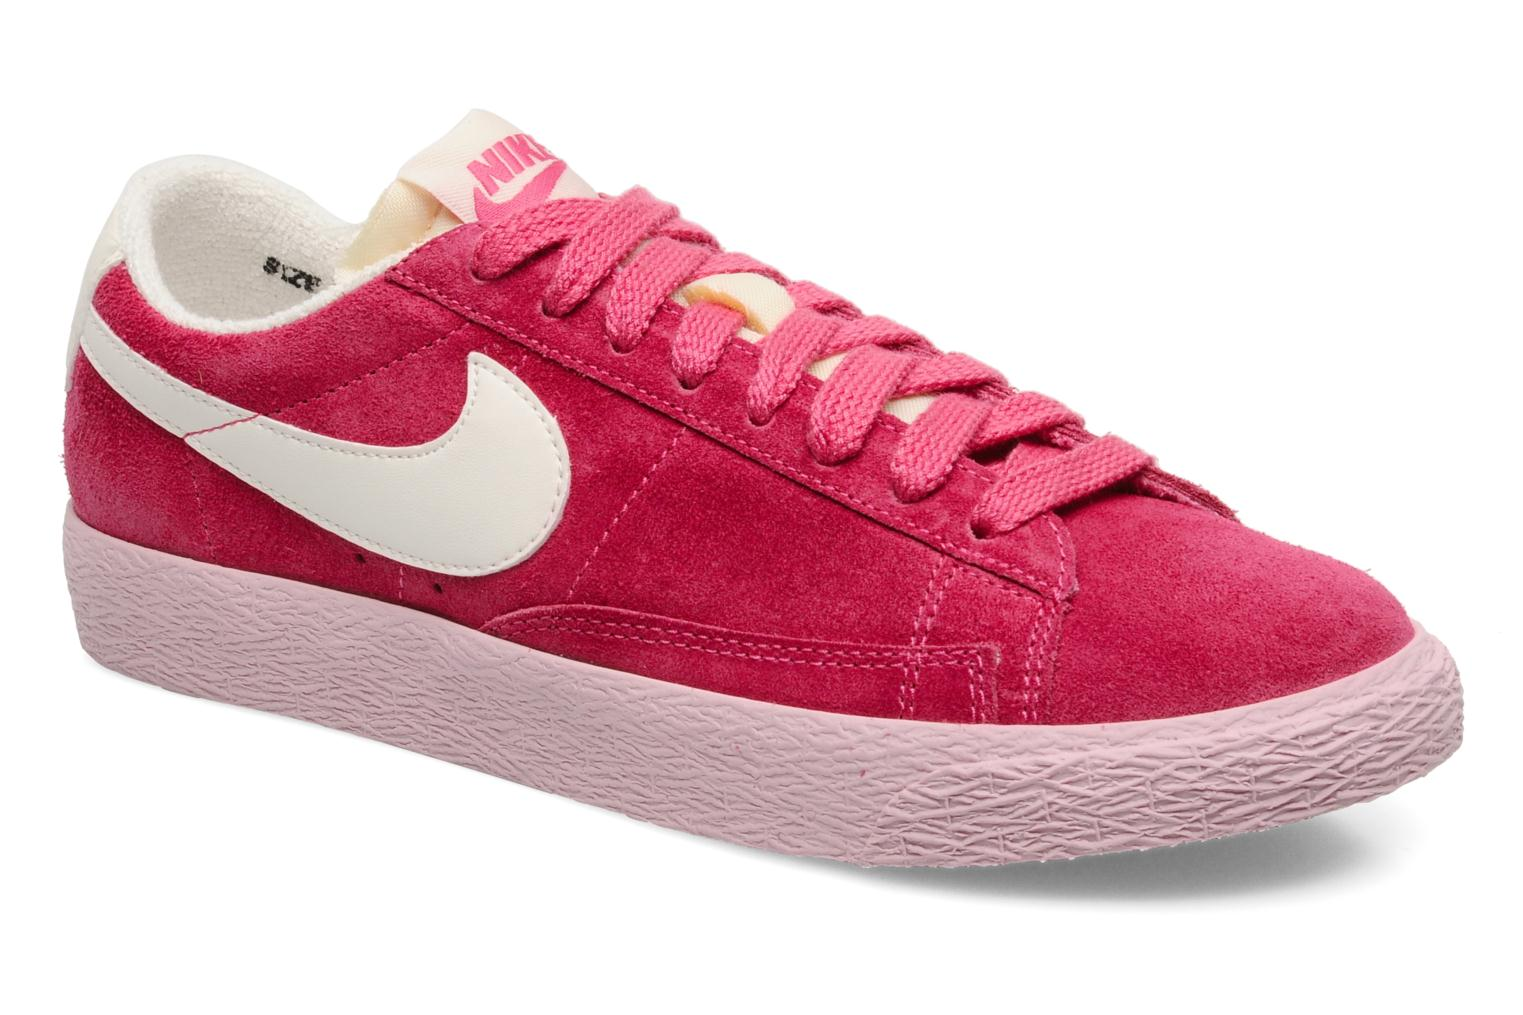 Trainers Nike Wmns Blazer Low Suede Vintage Pink detailed view Pair view .  ... 1cf11fad0